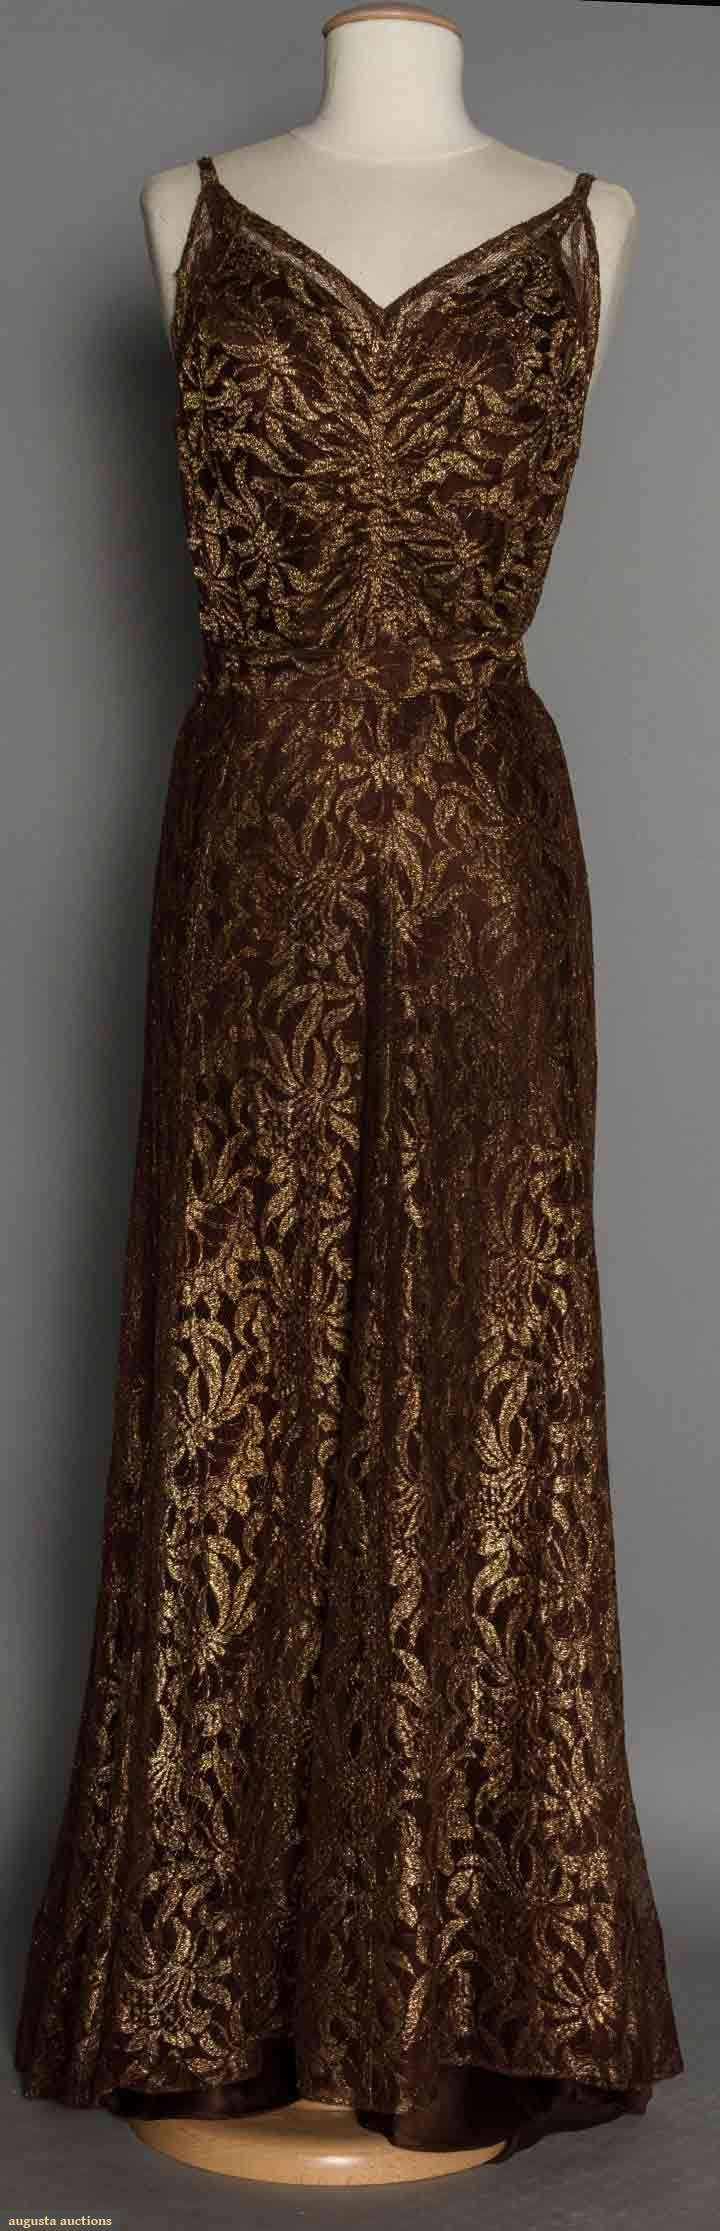 1930's brown & gold lace evening gown (back view)